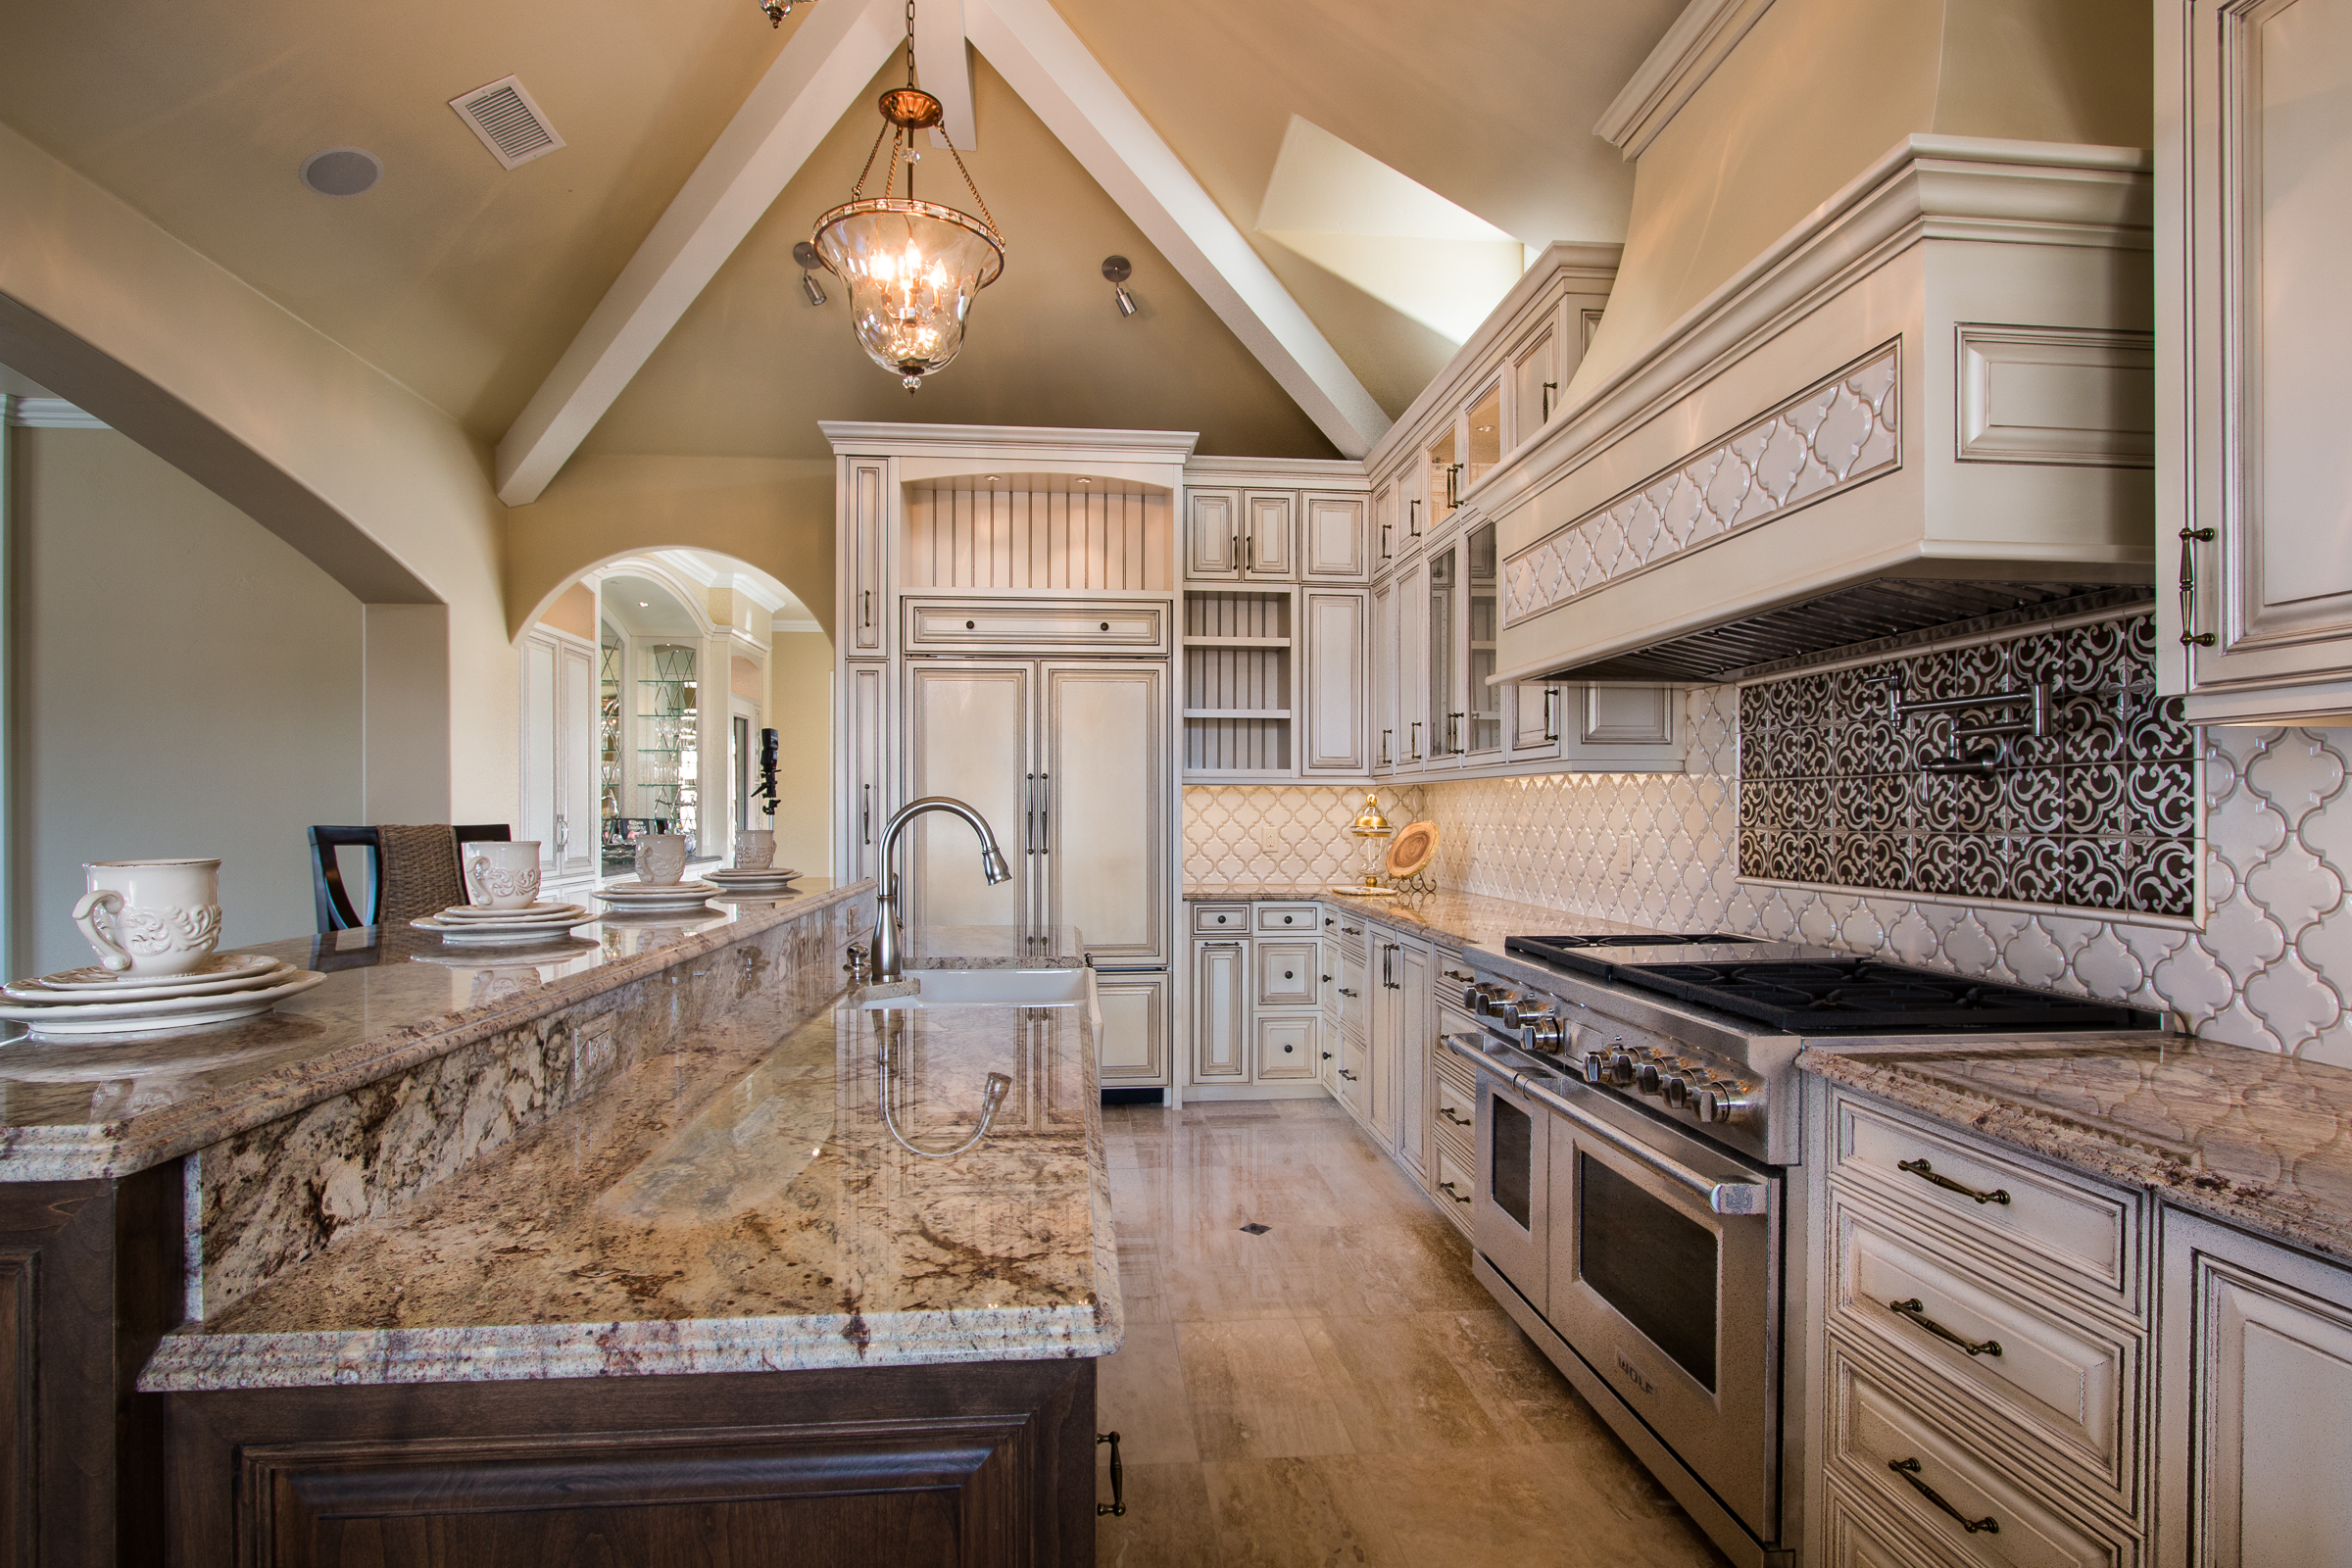 Luxury Kitchen Design Trends You Won't Want To Miss In 2018